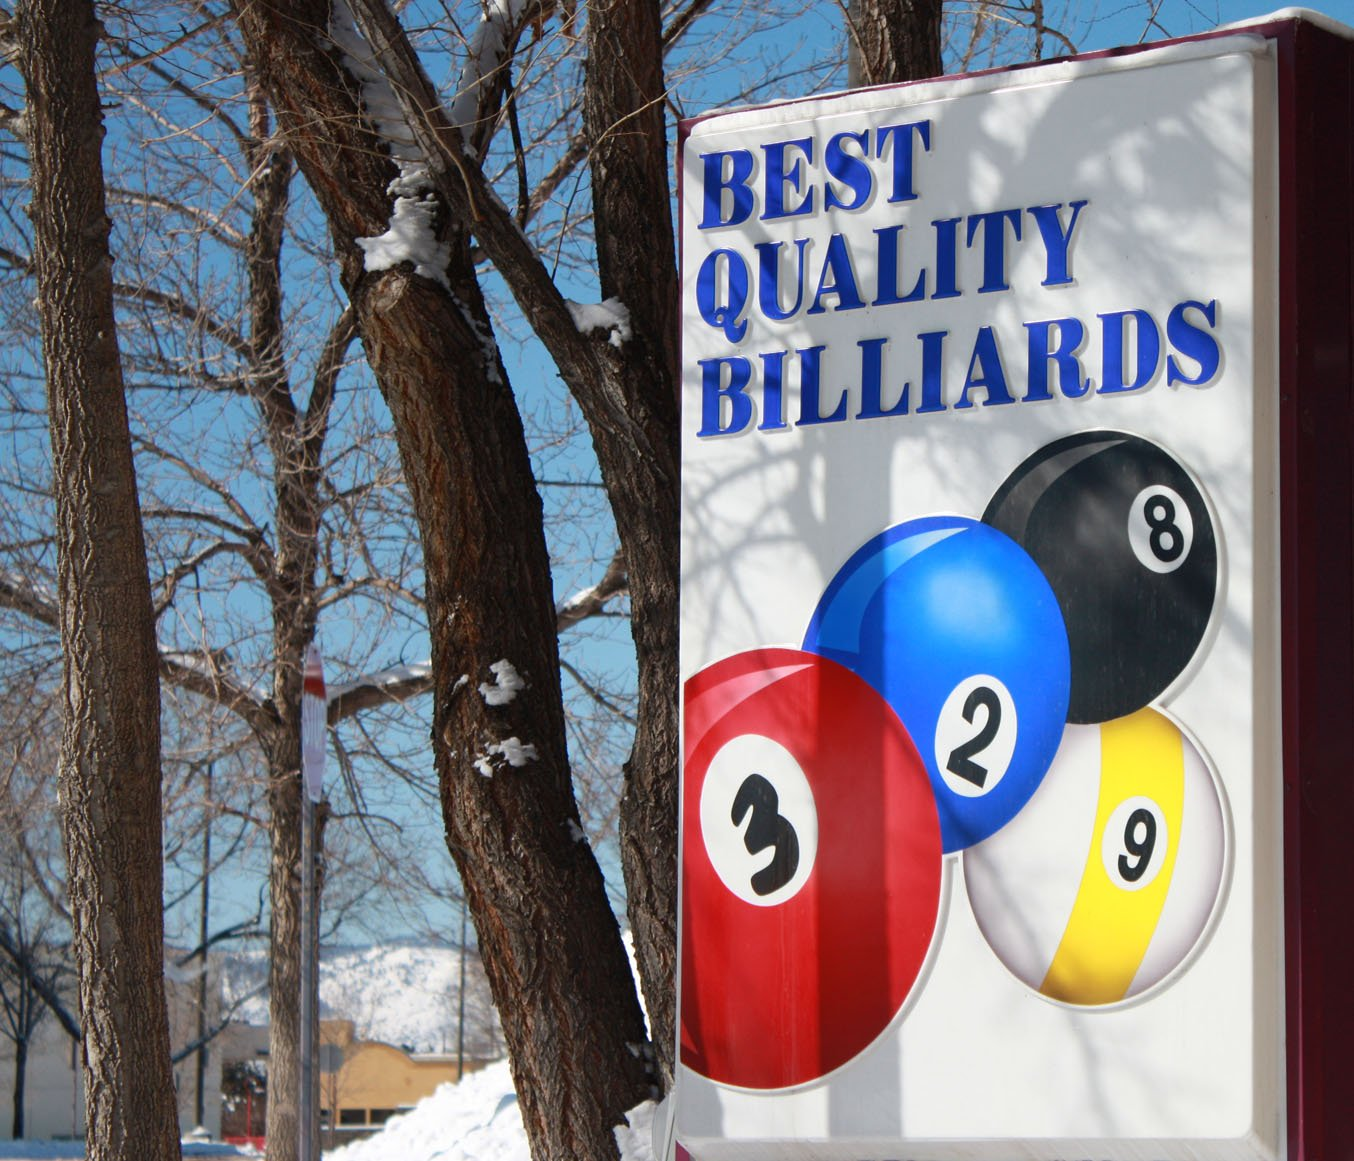 Denver, Colorado buys and services it's pool tables from Best Quality Billiards